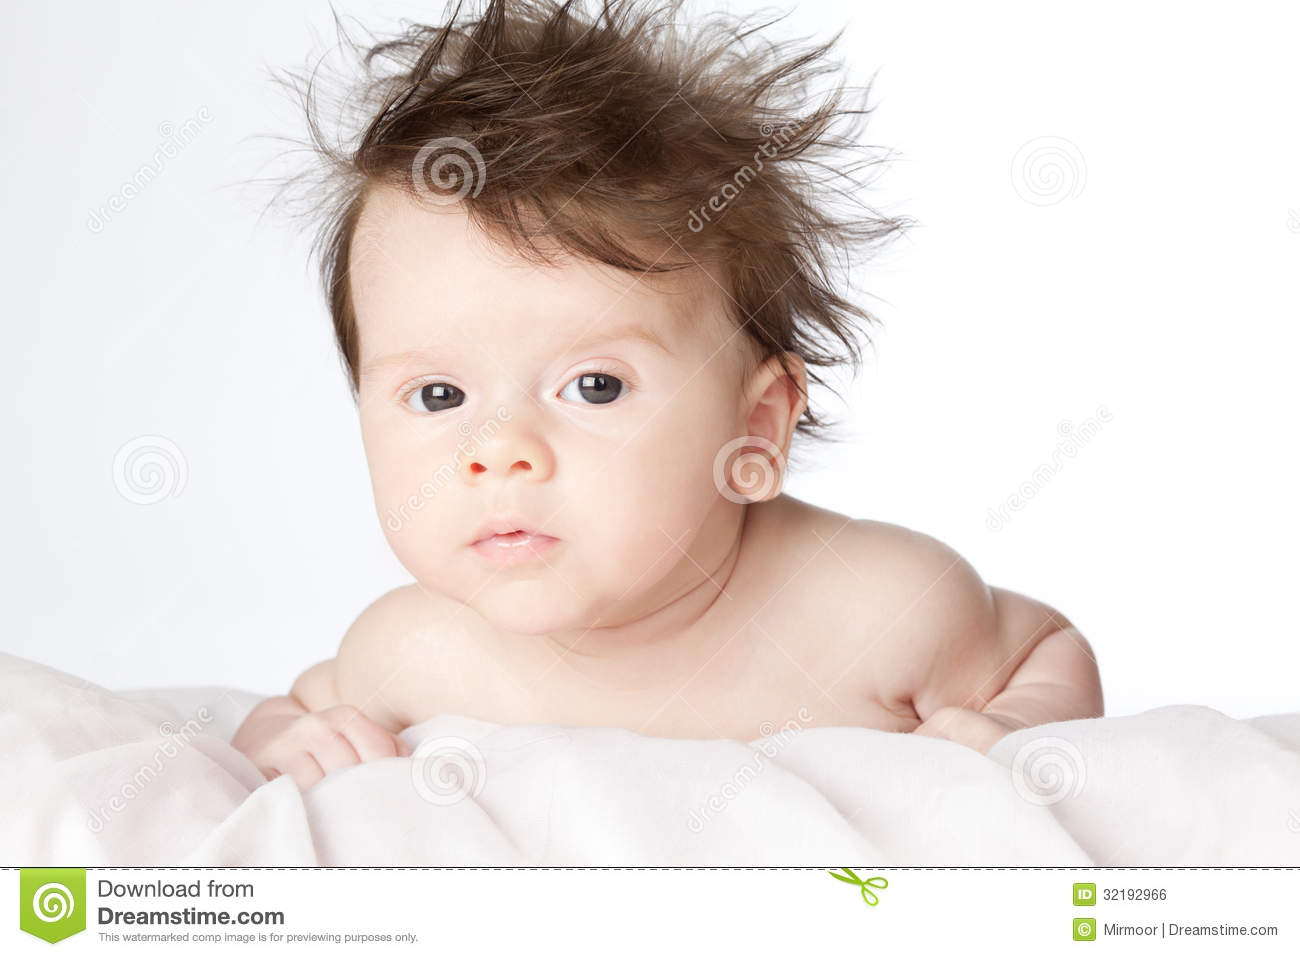 Cute Baby Boy With Long Hair. Stock Photo - Image of hair ...